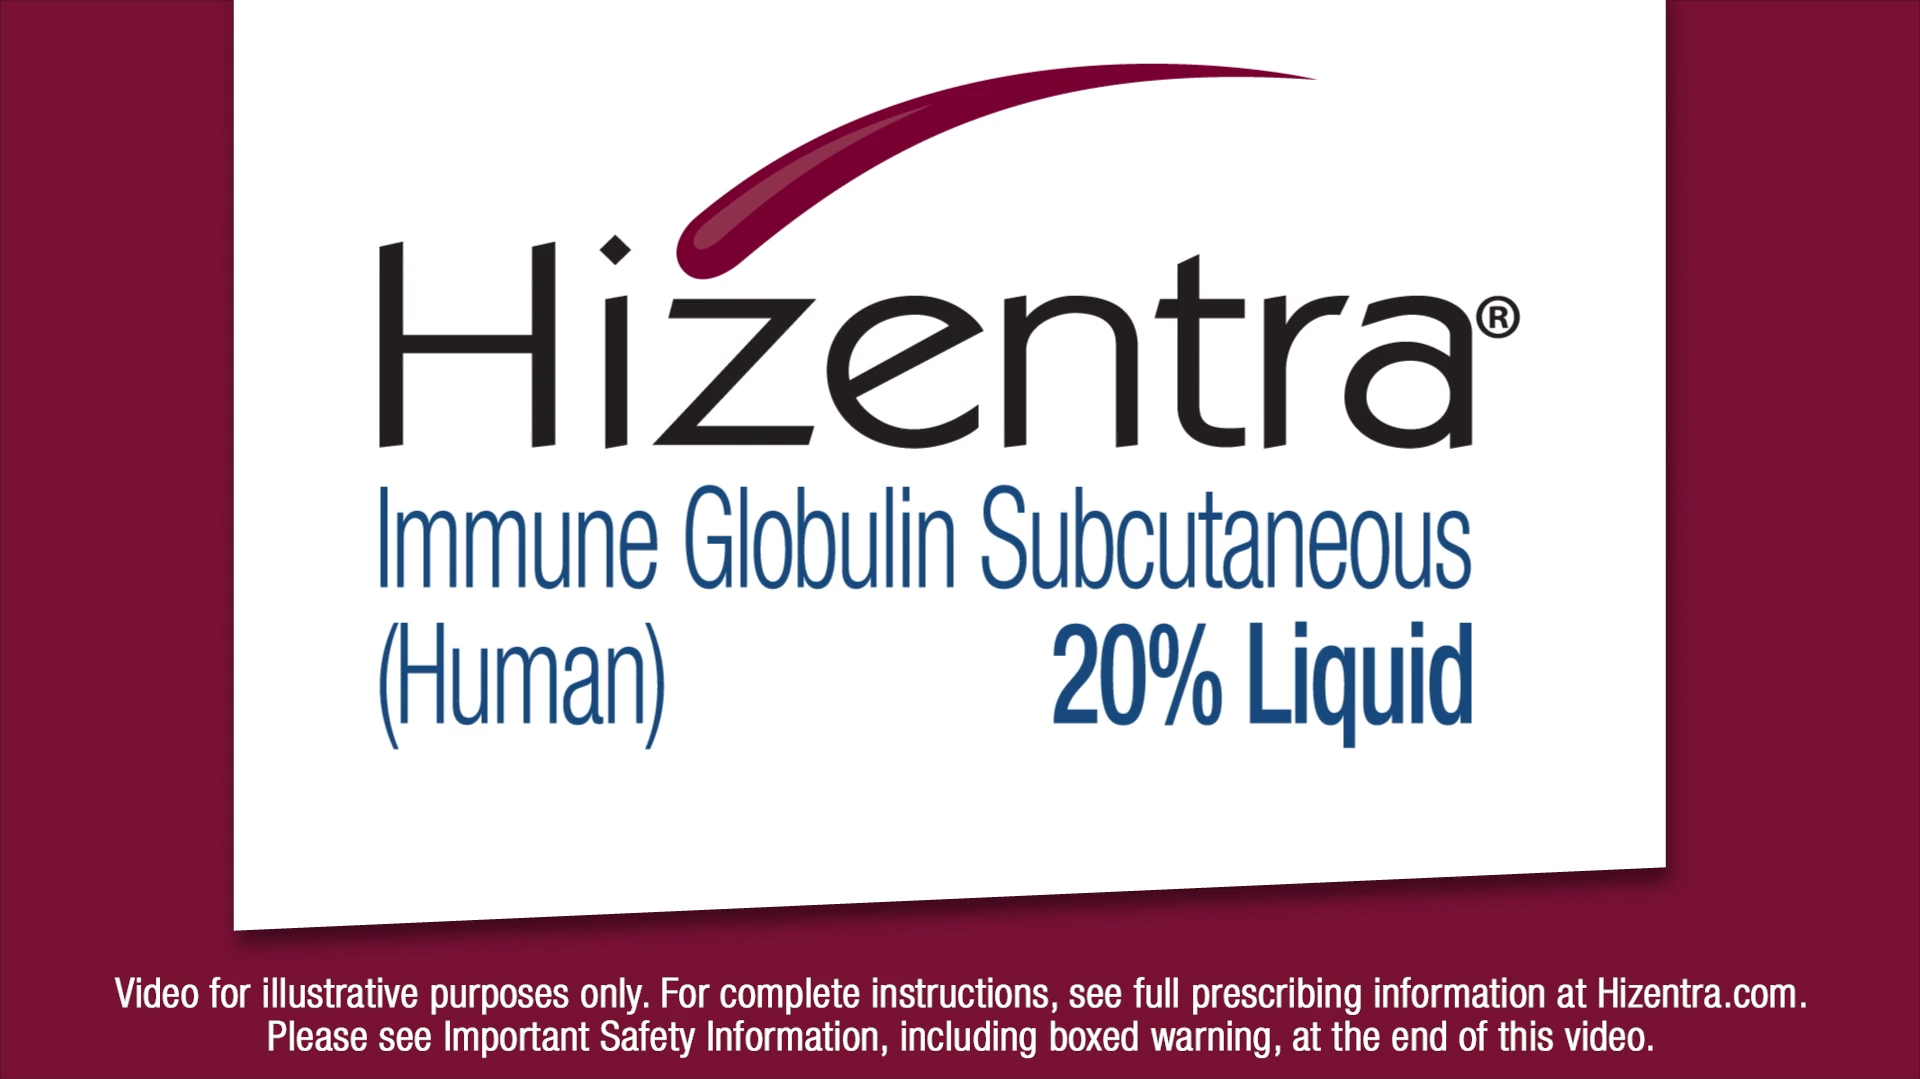 Dosing and Administration | HIZENTRA Immune Globulin